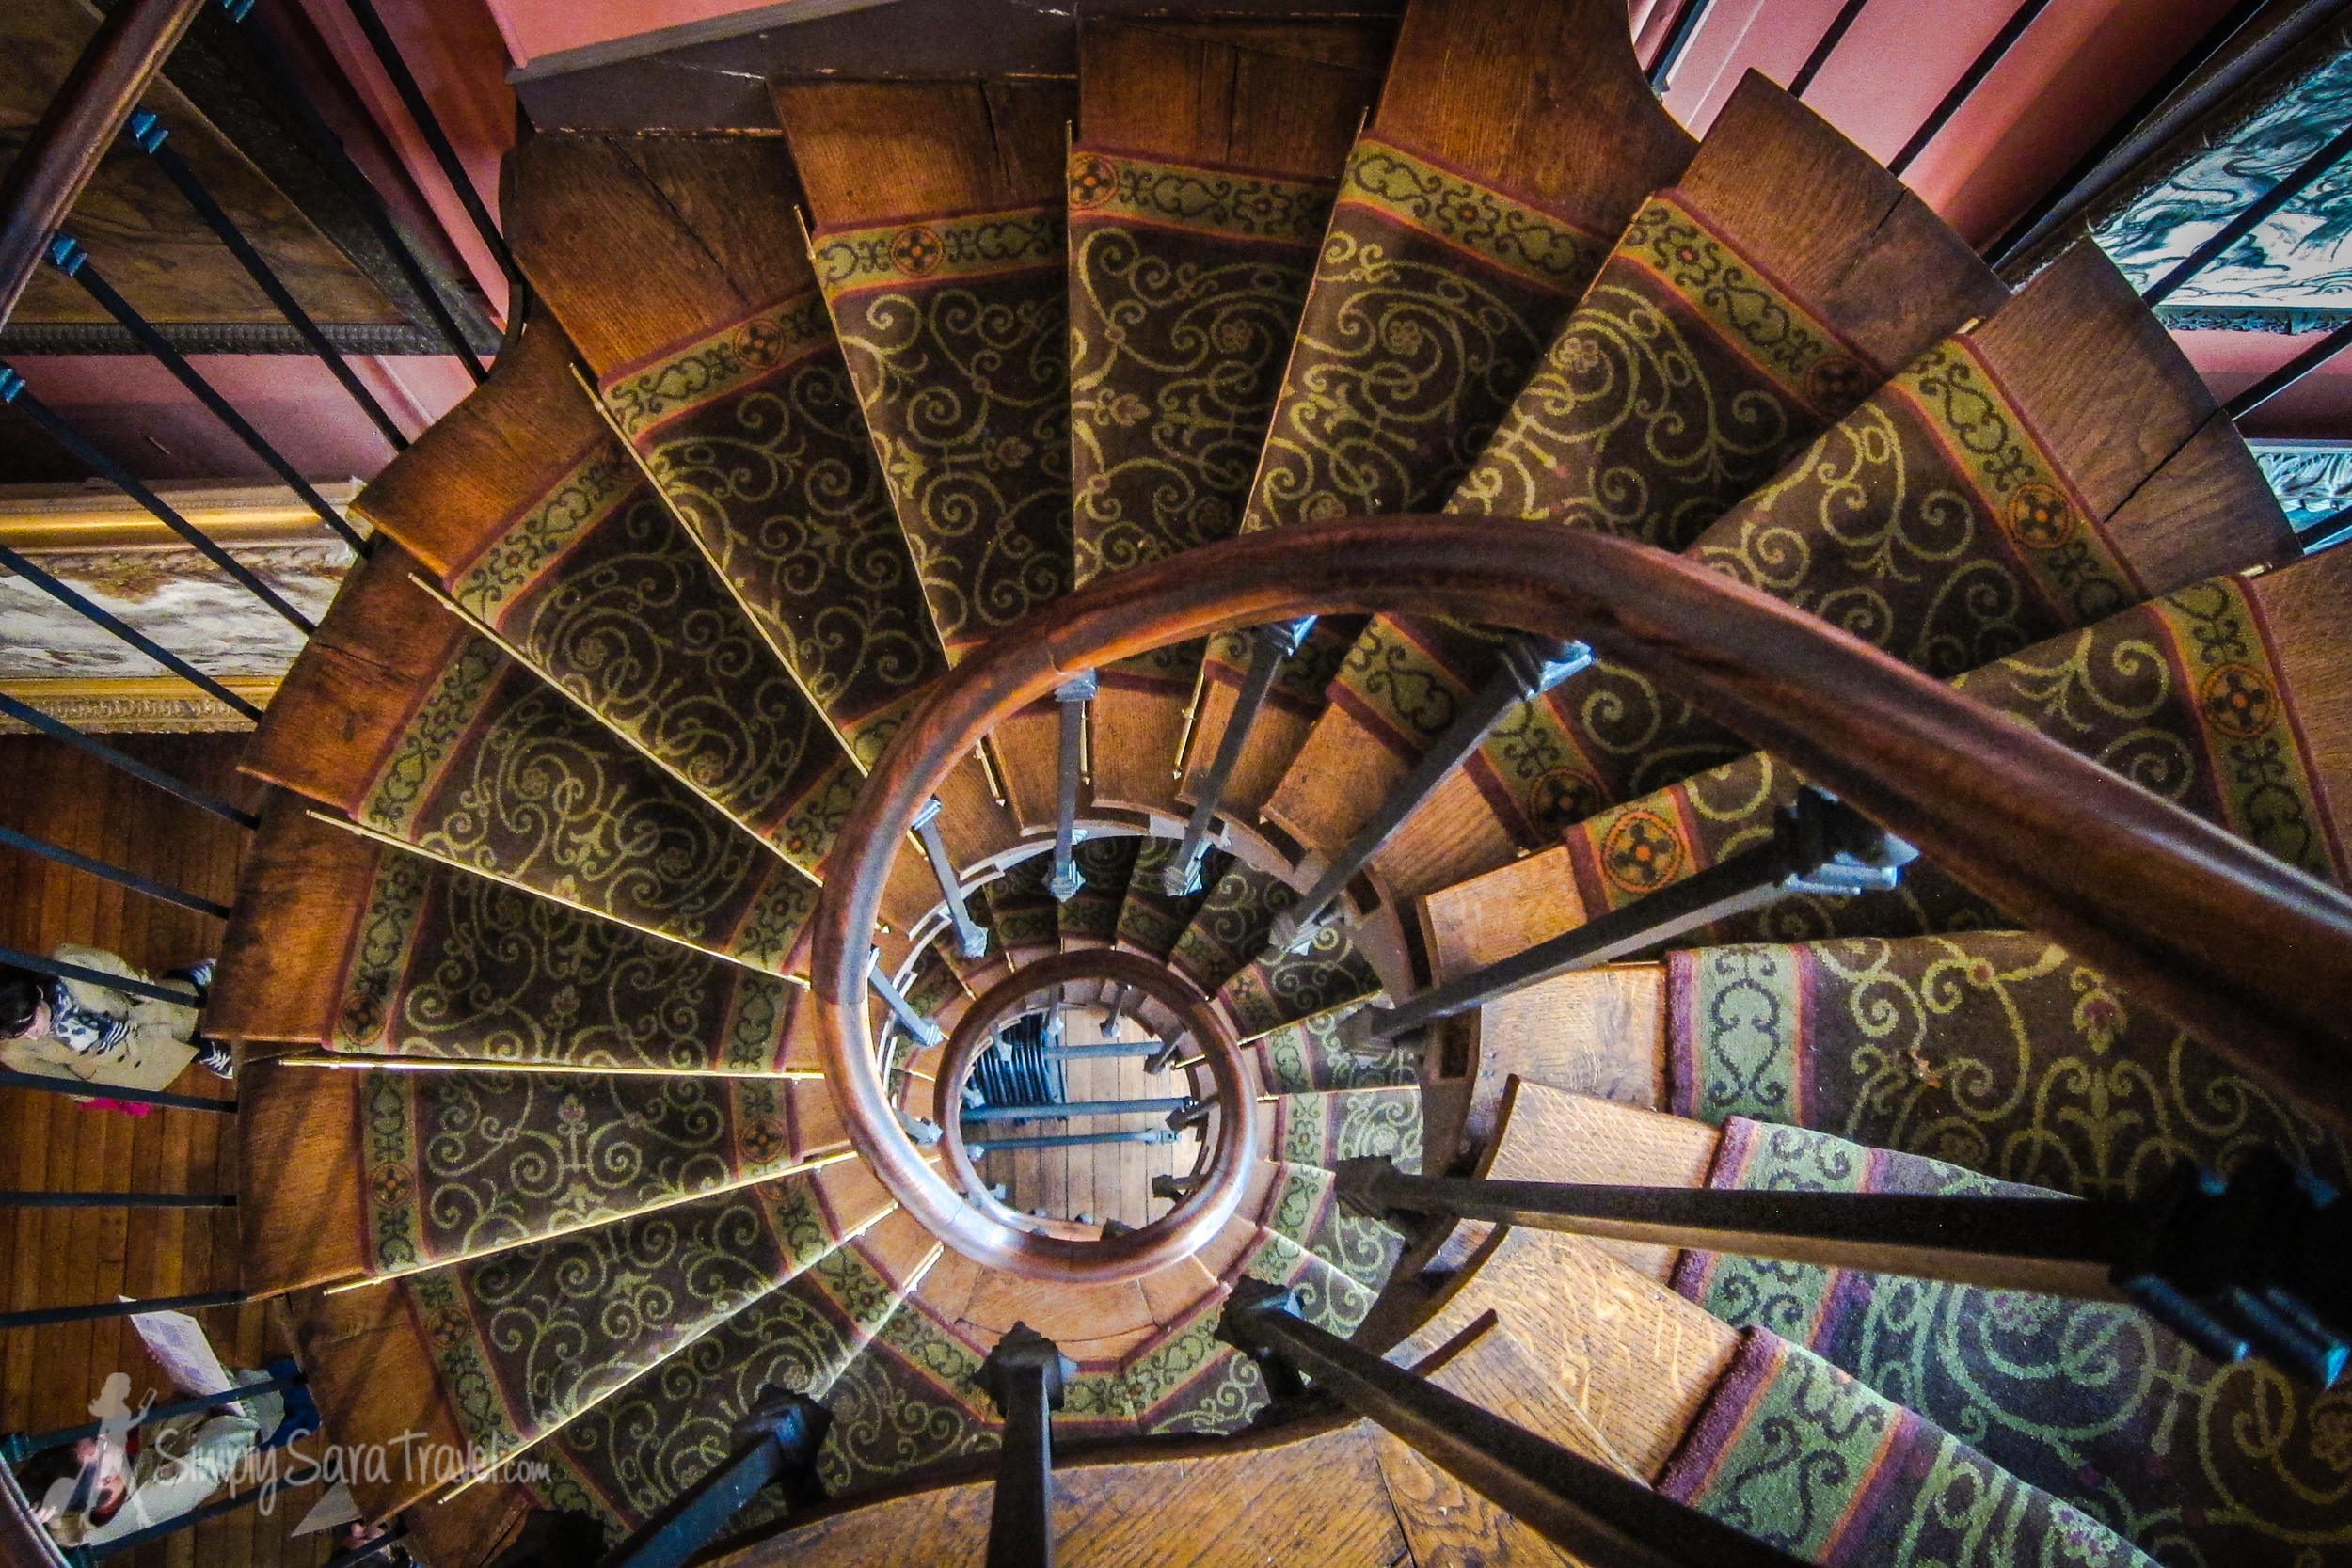 Spiral Staircase at Musée Gustave Moreau, Paris